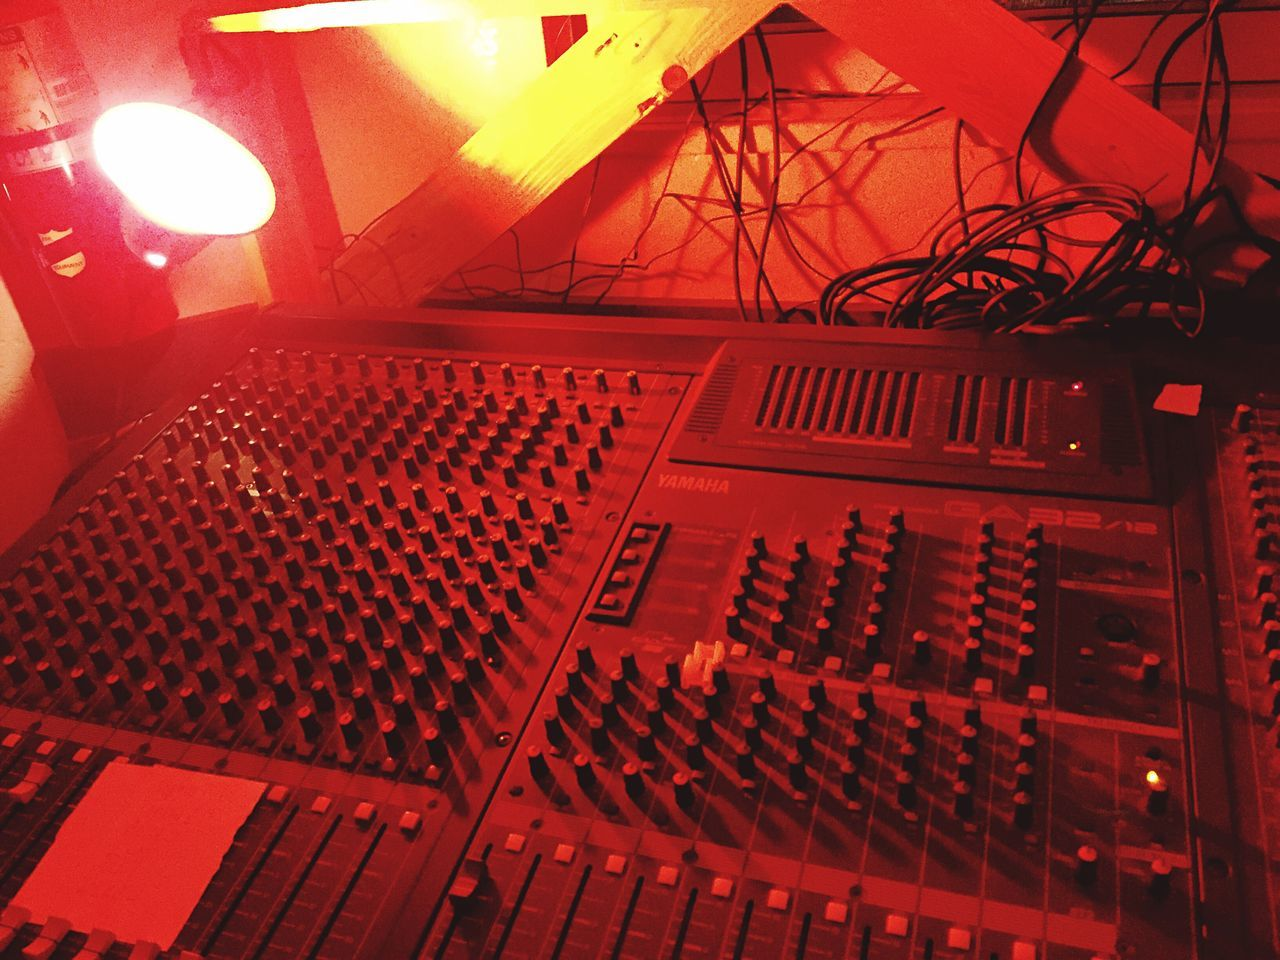 Illuminated Indoors  No People Technology Recording Studio Sound Mixer Low Angle View Day Break The Mold EyeEmNewHere